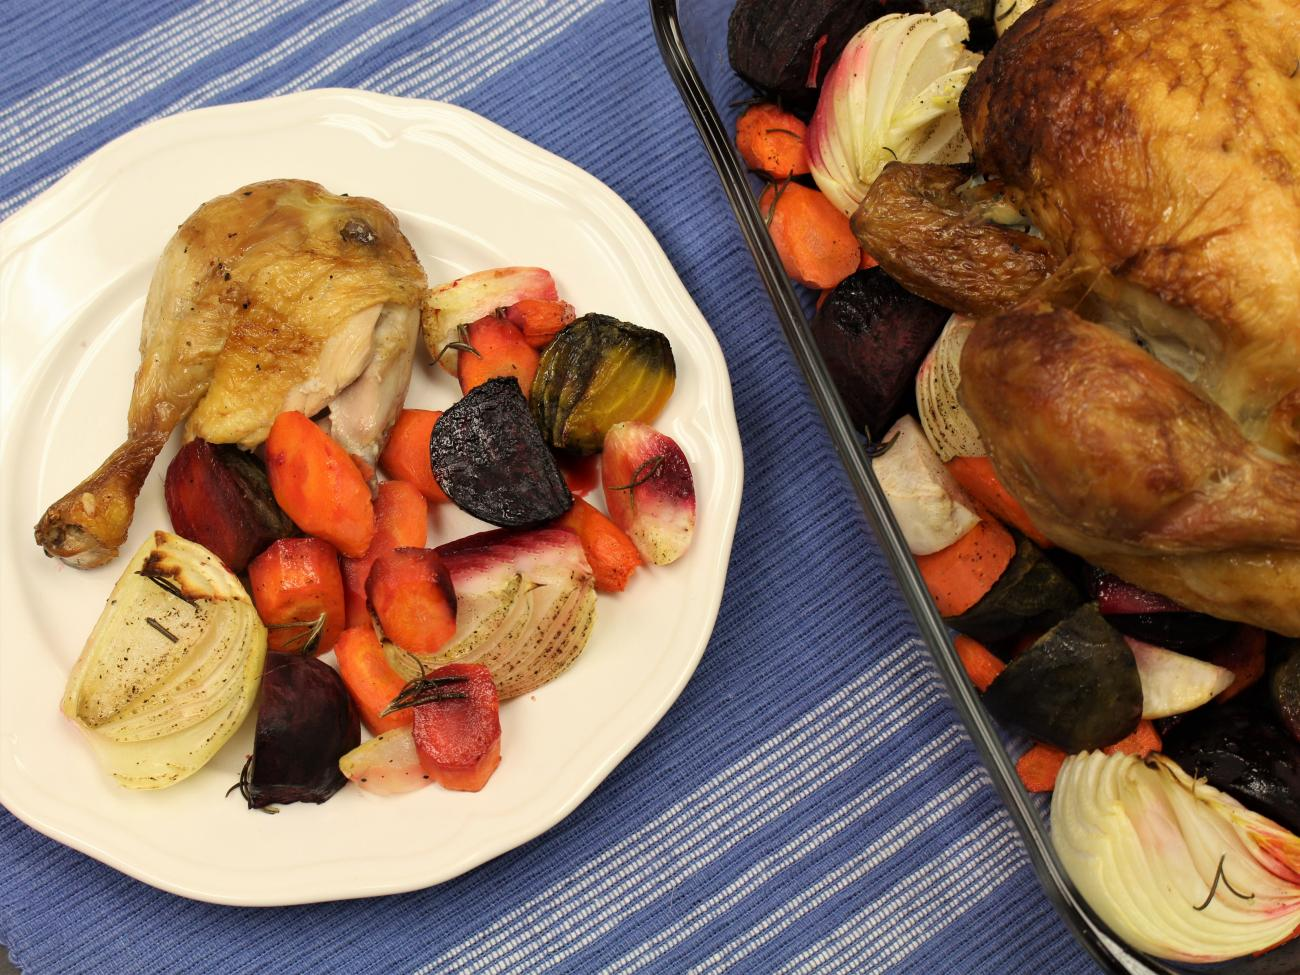 Recipe for Roasted Chicken with Root Vegetables